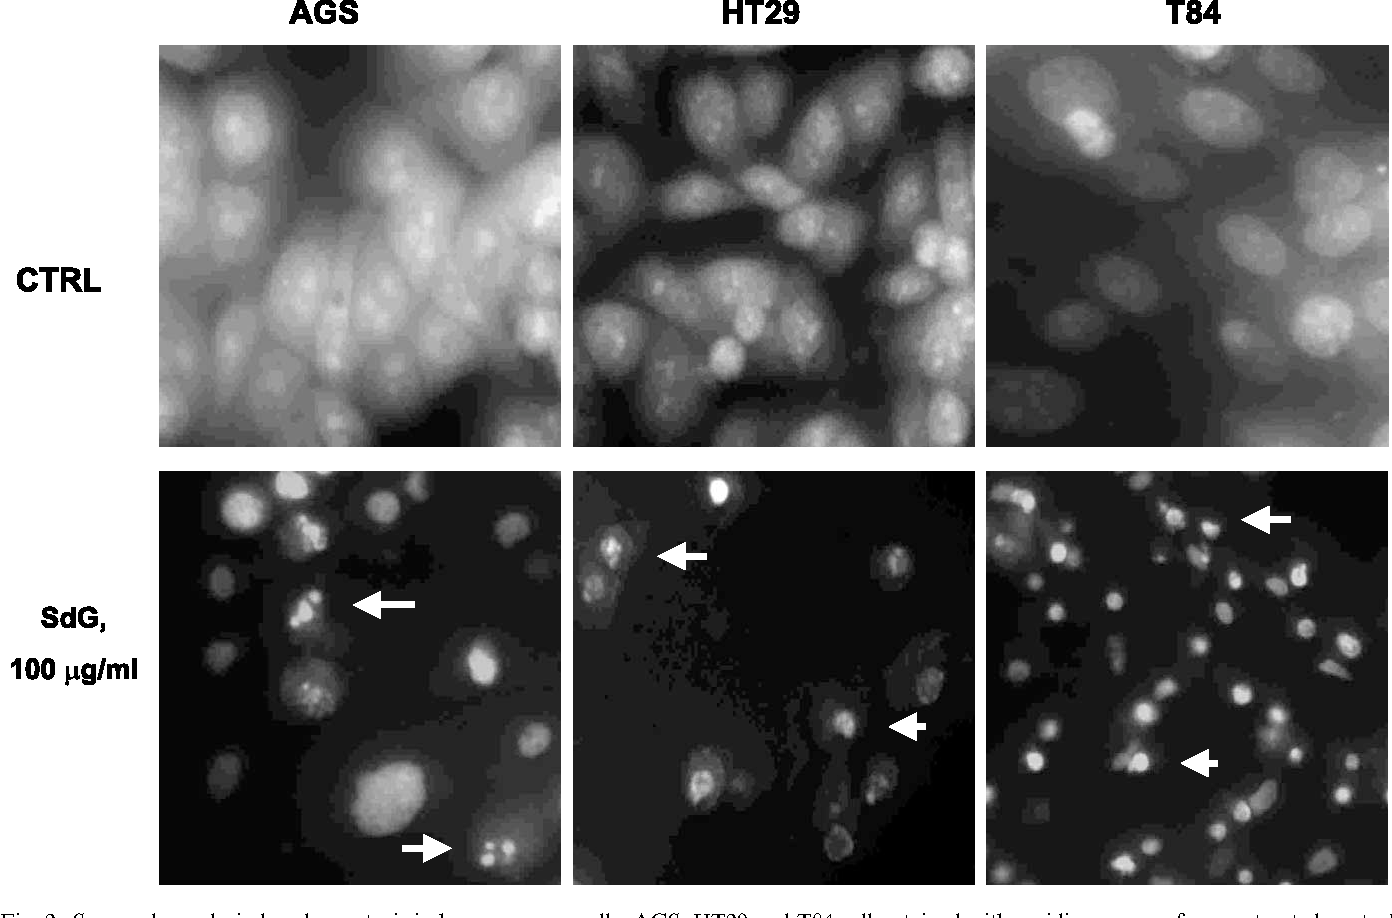 Fig. 2. Sangre de grado-induced apoptosis in human cancer cells. AGS, HT29 and T84 cells, stained with acridine orange, from untreated control cultures or cells exposed to sangre de grado (SdG, 100 mg/ml) for 12 h as described in Section 2. Apoptotic cells show chromatin condensation and nuclear fragmentation.